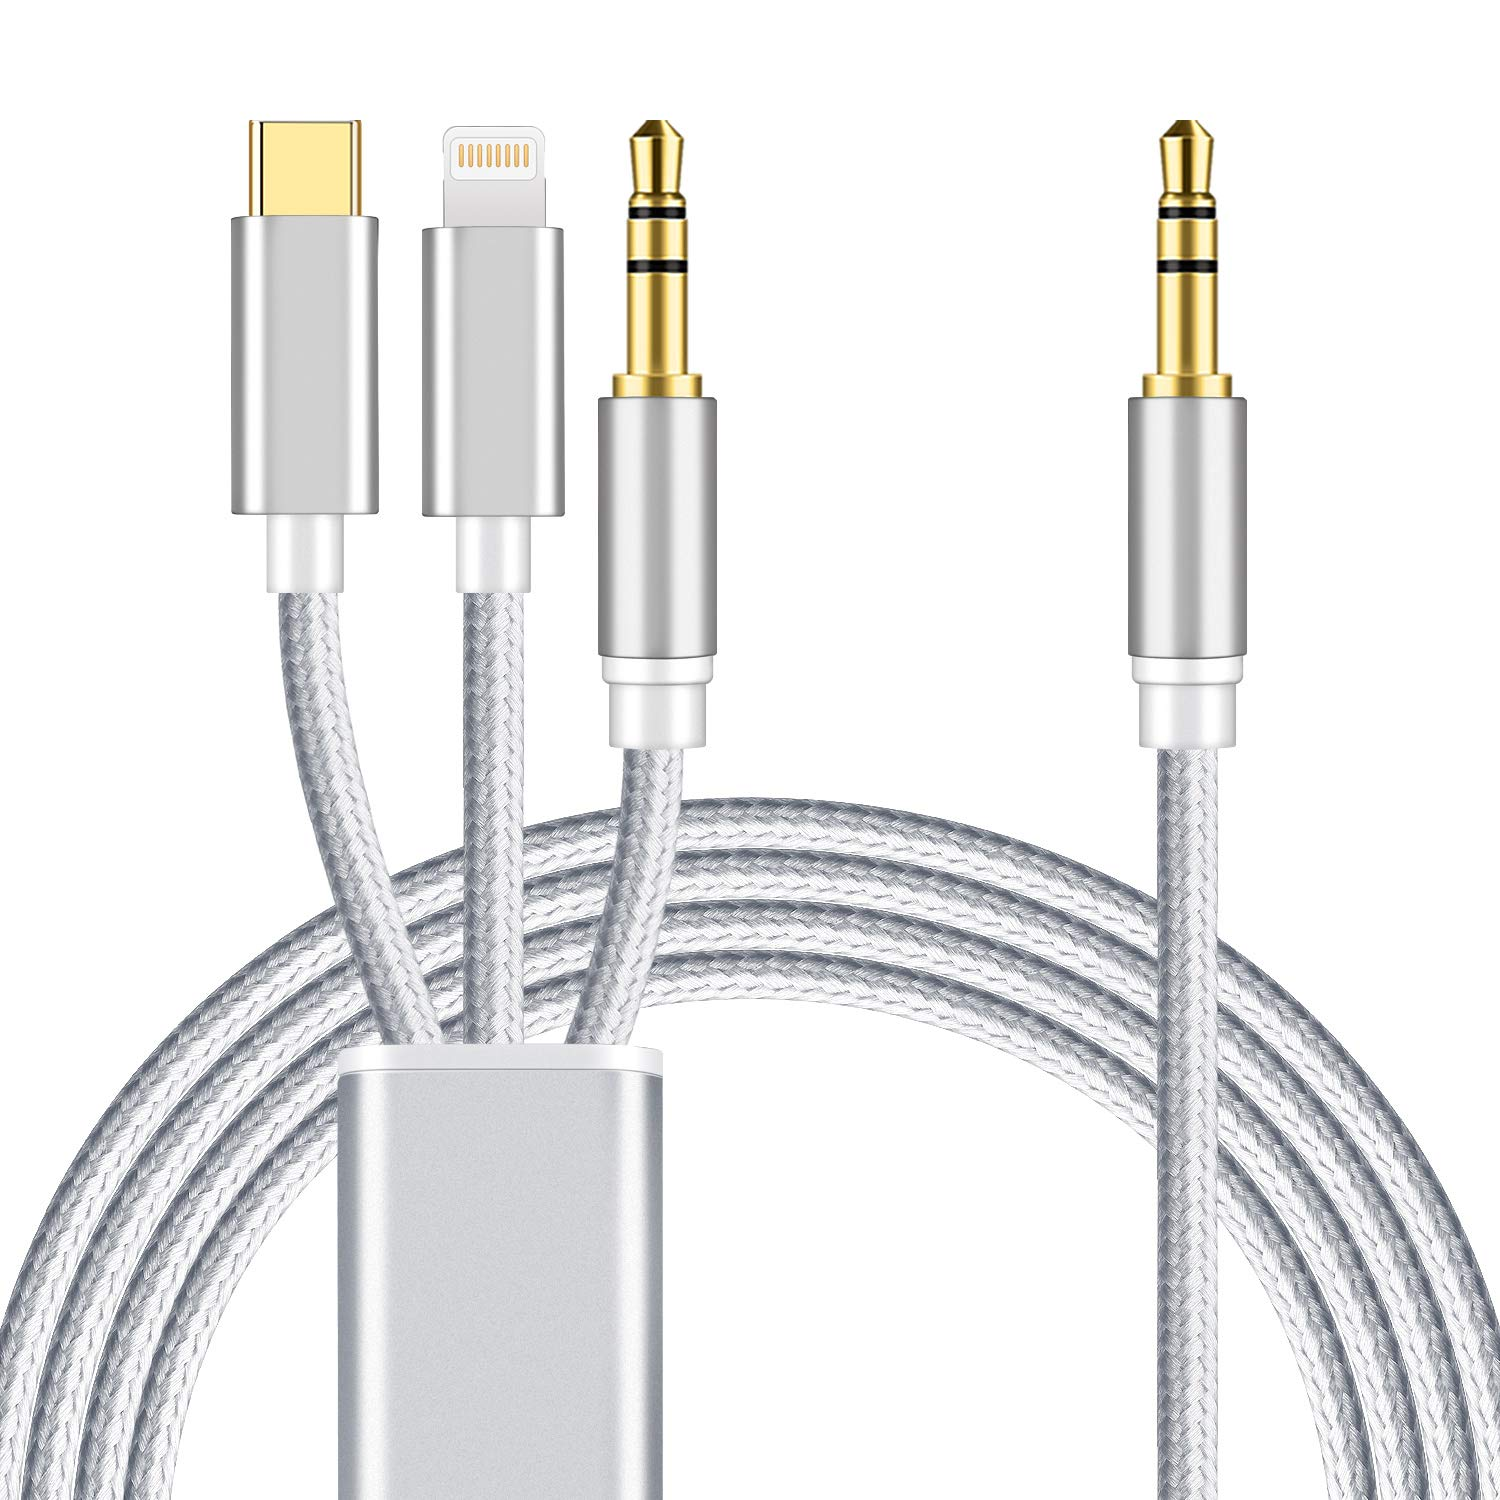 3 in 1 Car Aux Cable, Mxcudu 3 in 1 Headset Audio Cord Car Stereo Aux Cable Compatible with Google Pixel 3/3XL/2/2XL, OnePlus 7/7Pro/6T, Samsung Galaxy S10/S9, iPhone Xs/XR/8 Plus/7 and More (Silver)